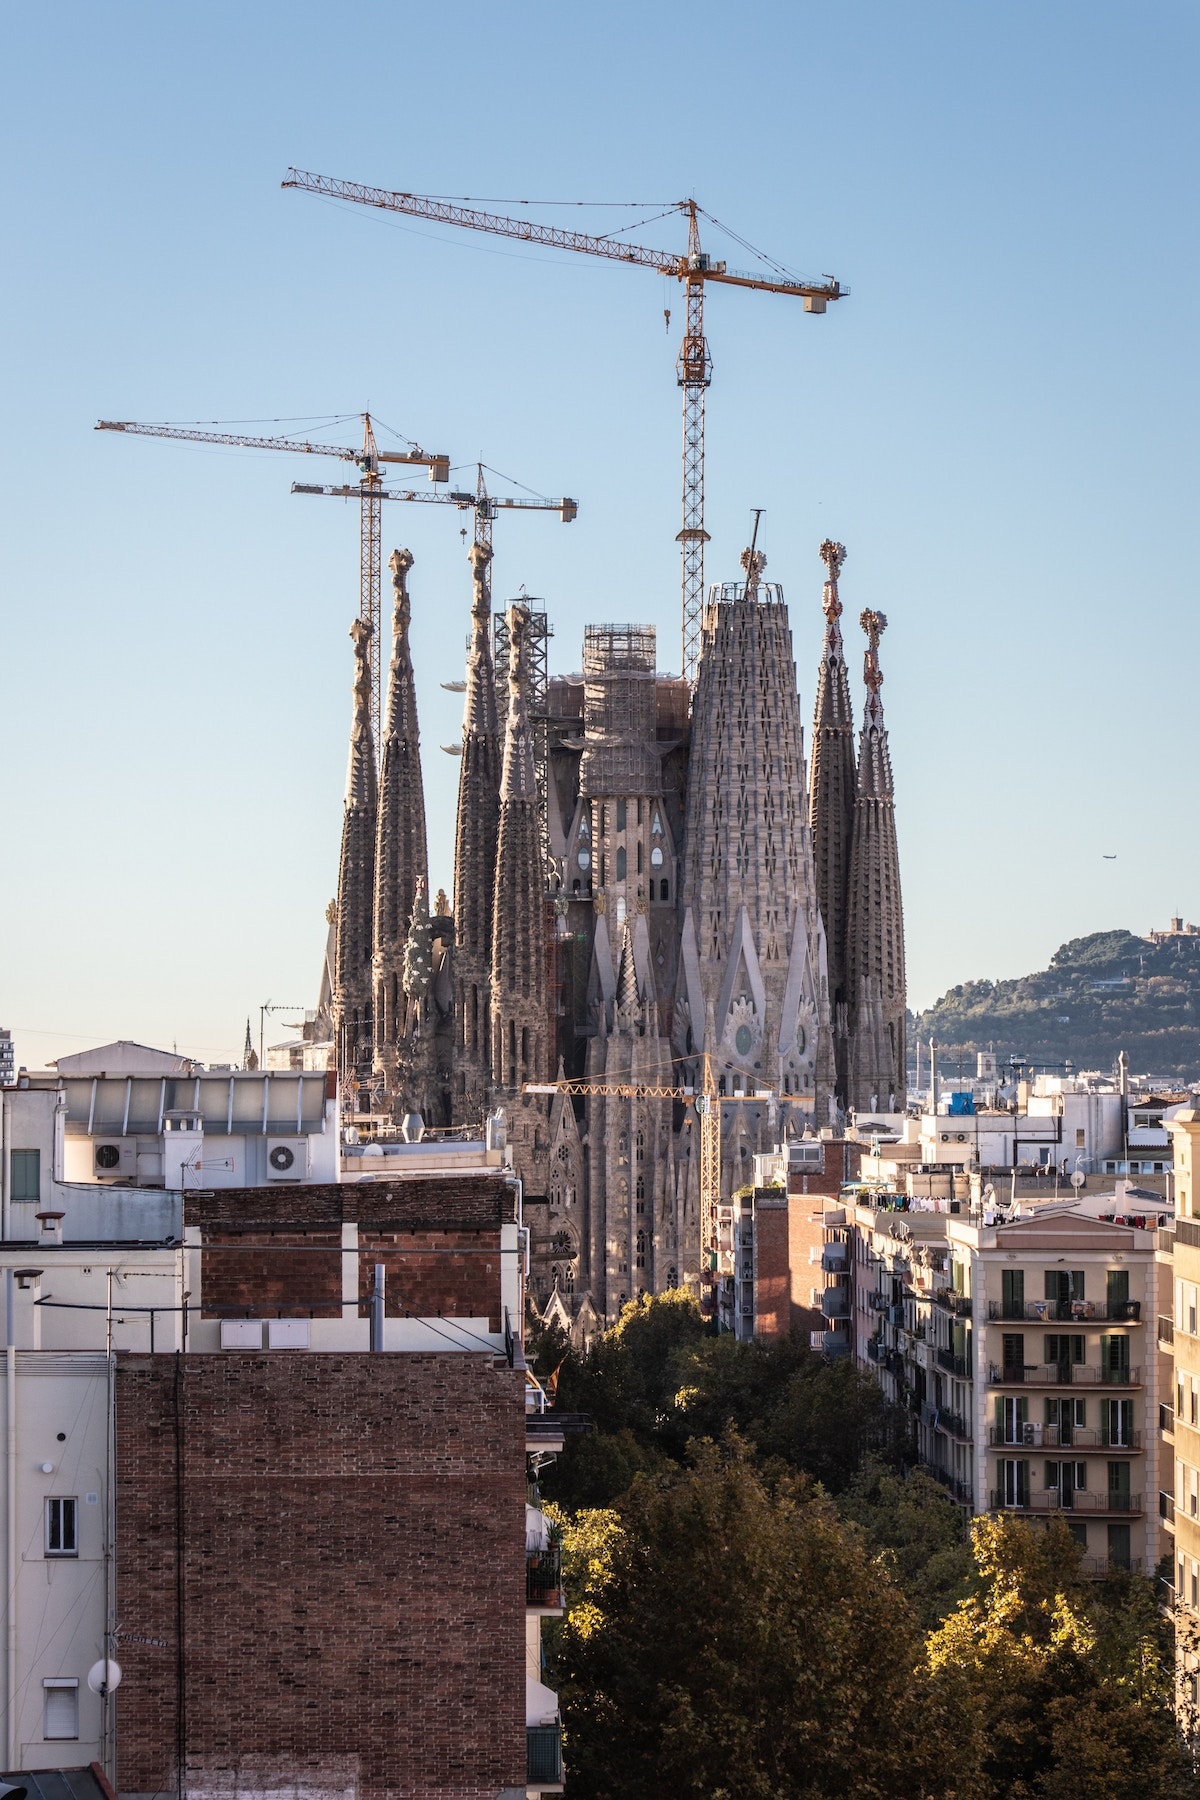 Why Antoni Gaudí's Sagrada Família Still Isn't Finished after 136